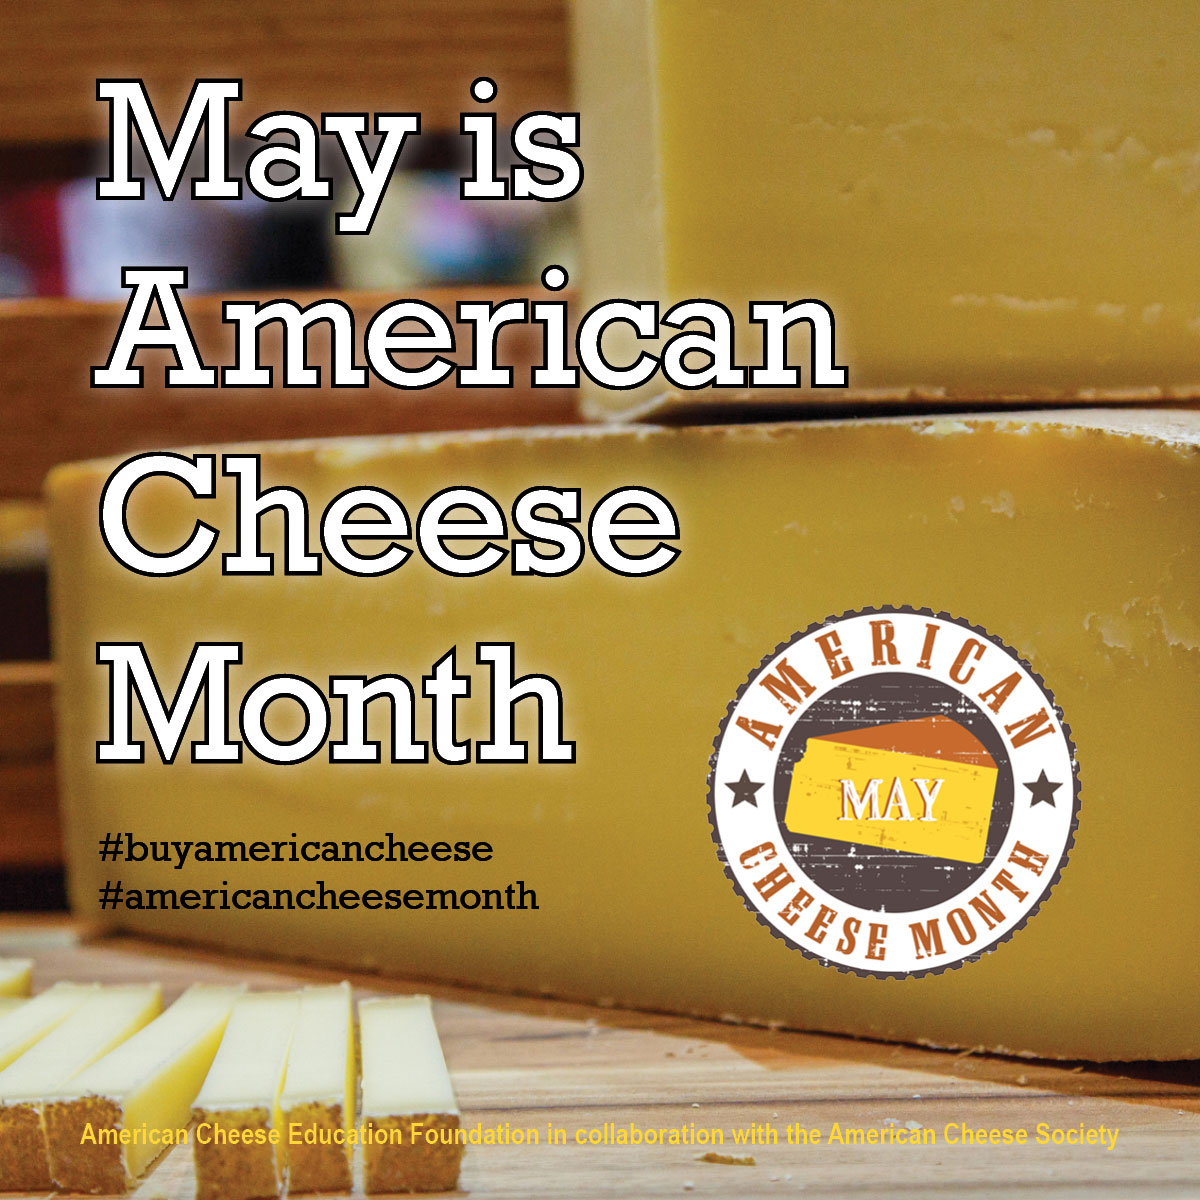 May is American Cheese Month.